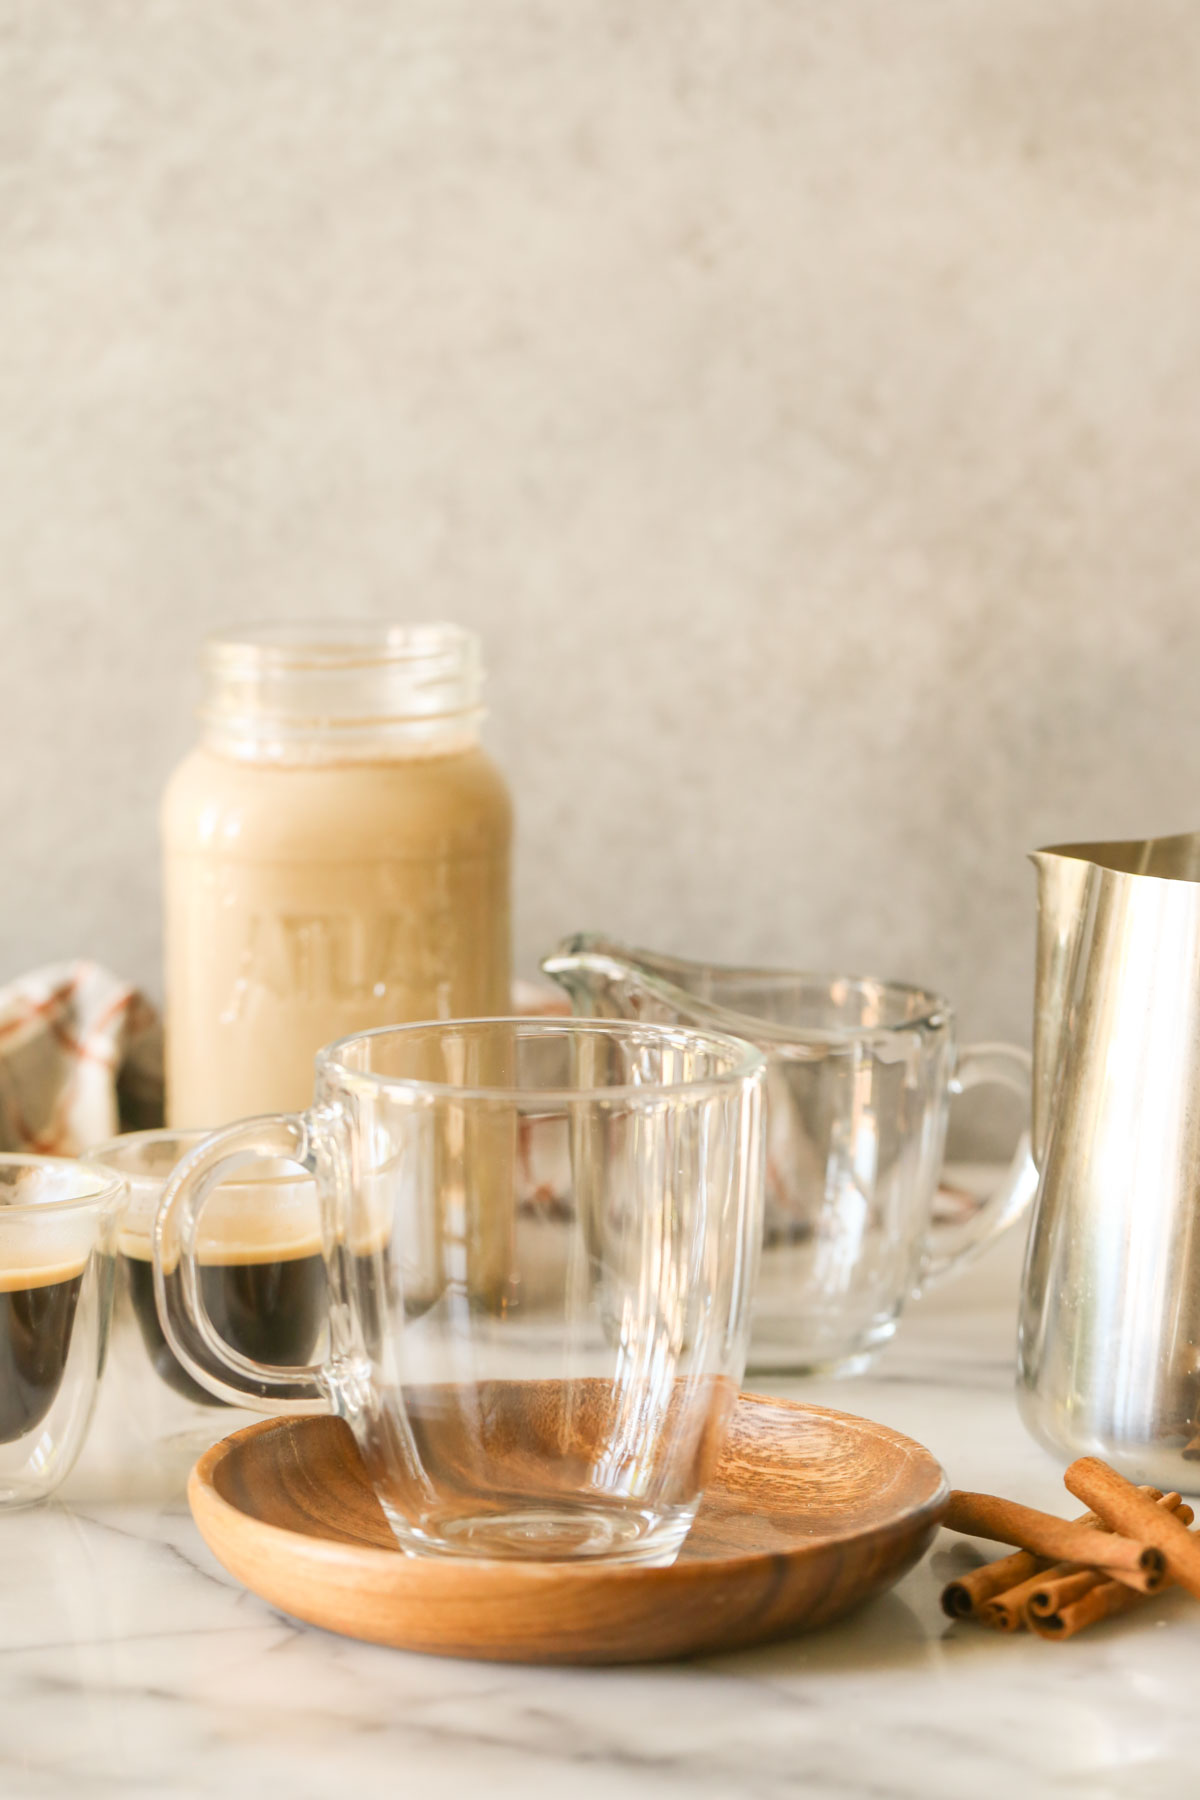 A glass mug on a wood saucer with cinnamon sticks next to it, espresso shots in the background, along with a glass jar of Brown Sugar and Cinnamon Coffee Creamer, a glass pouring mug and a stainless steel pitcher of steamed milk.